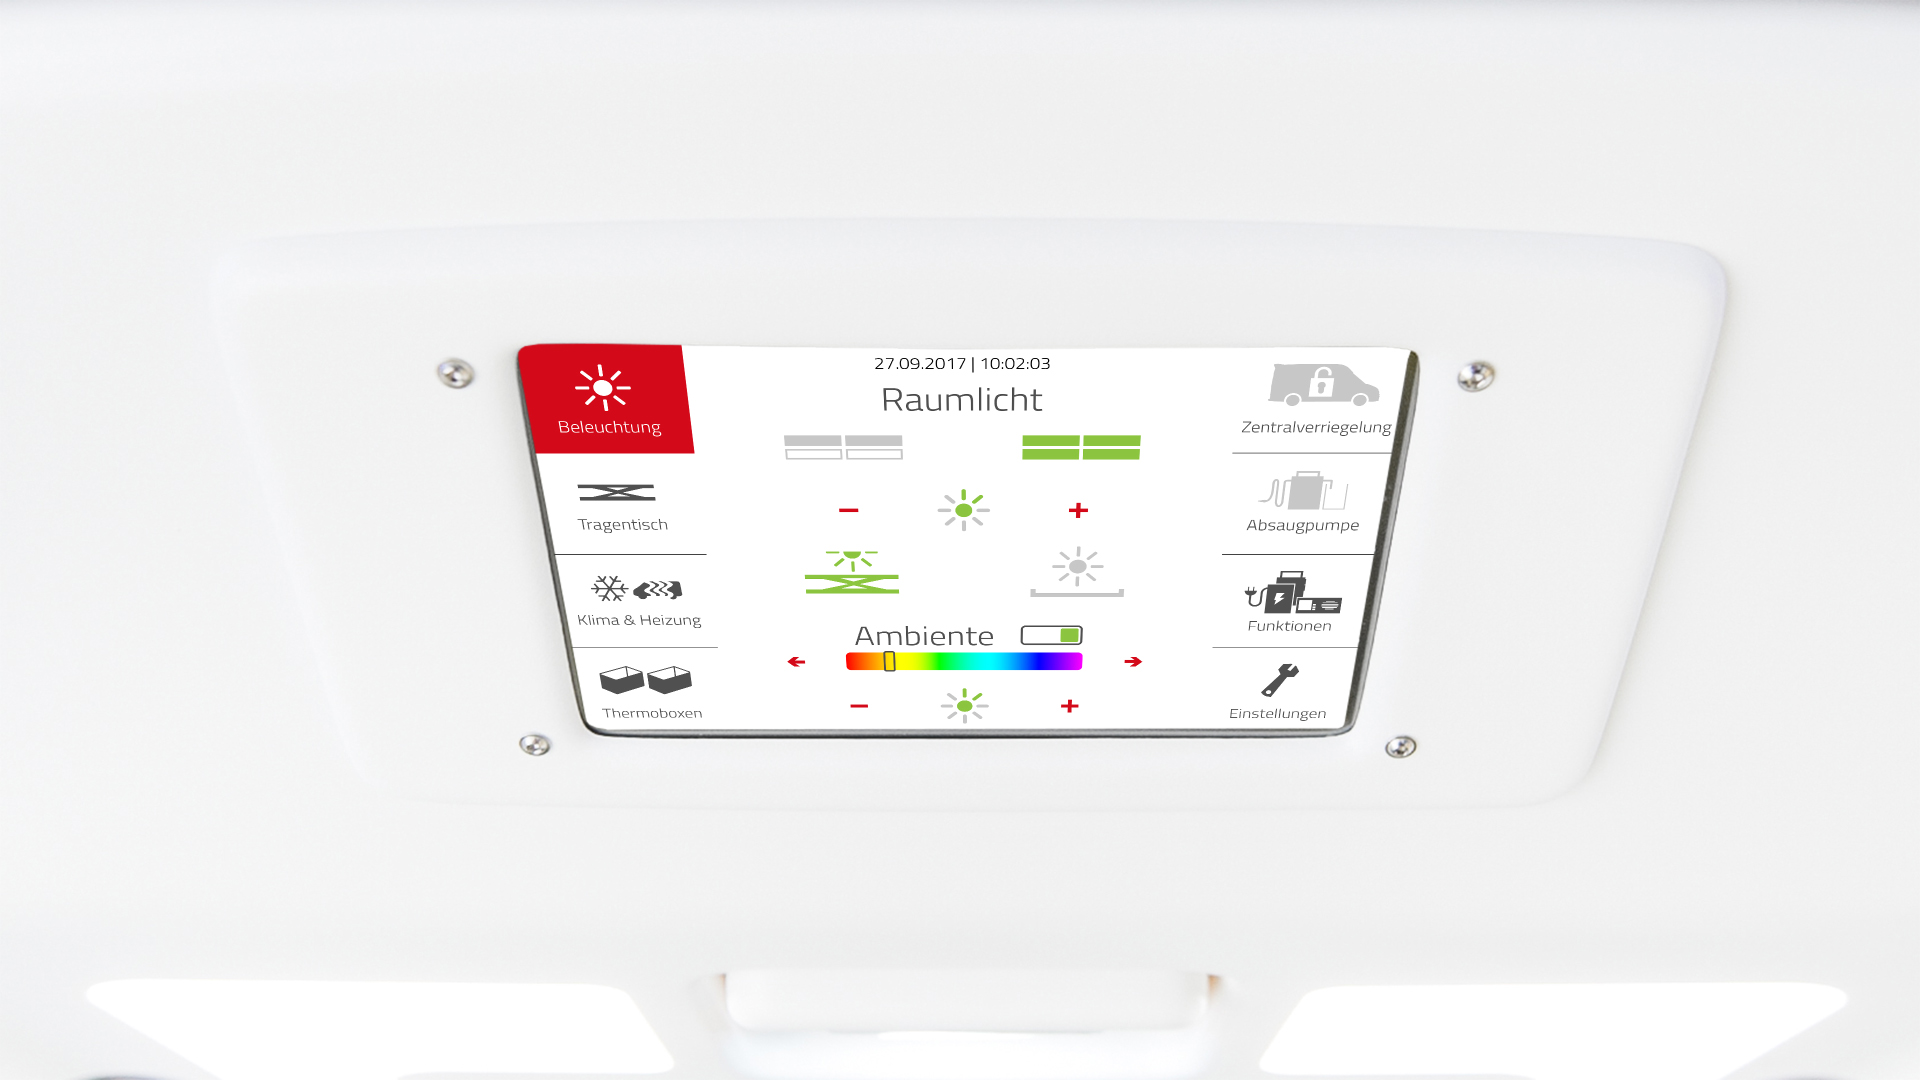 Touchdisplay, inomatic GmbH, Touch-Display, CAN-Bus Touchdisplay, Anezigedisplay, Touchdisplay 7Zoll, Bedienteil, Schalterleiste, Bedienelement, CAn Bus Tastatur